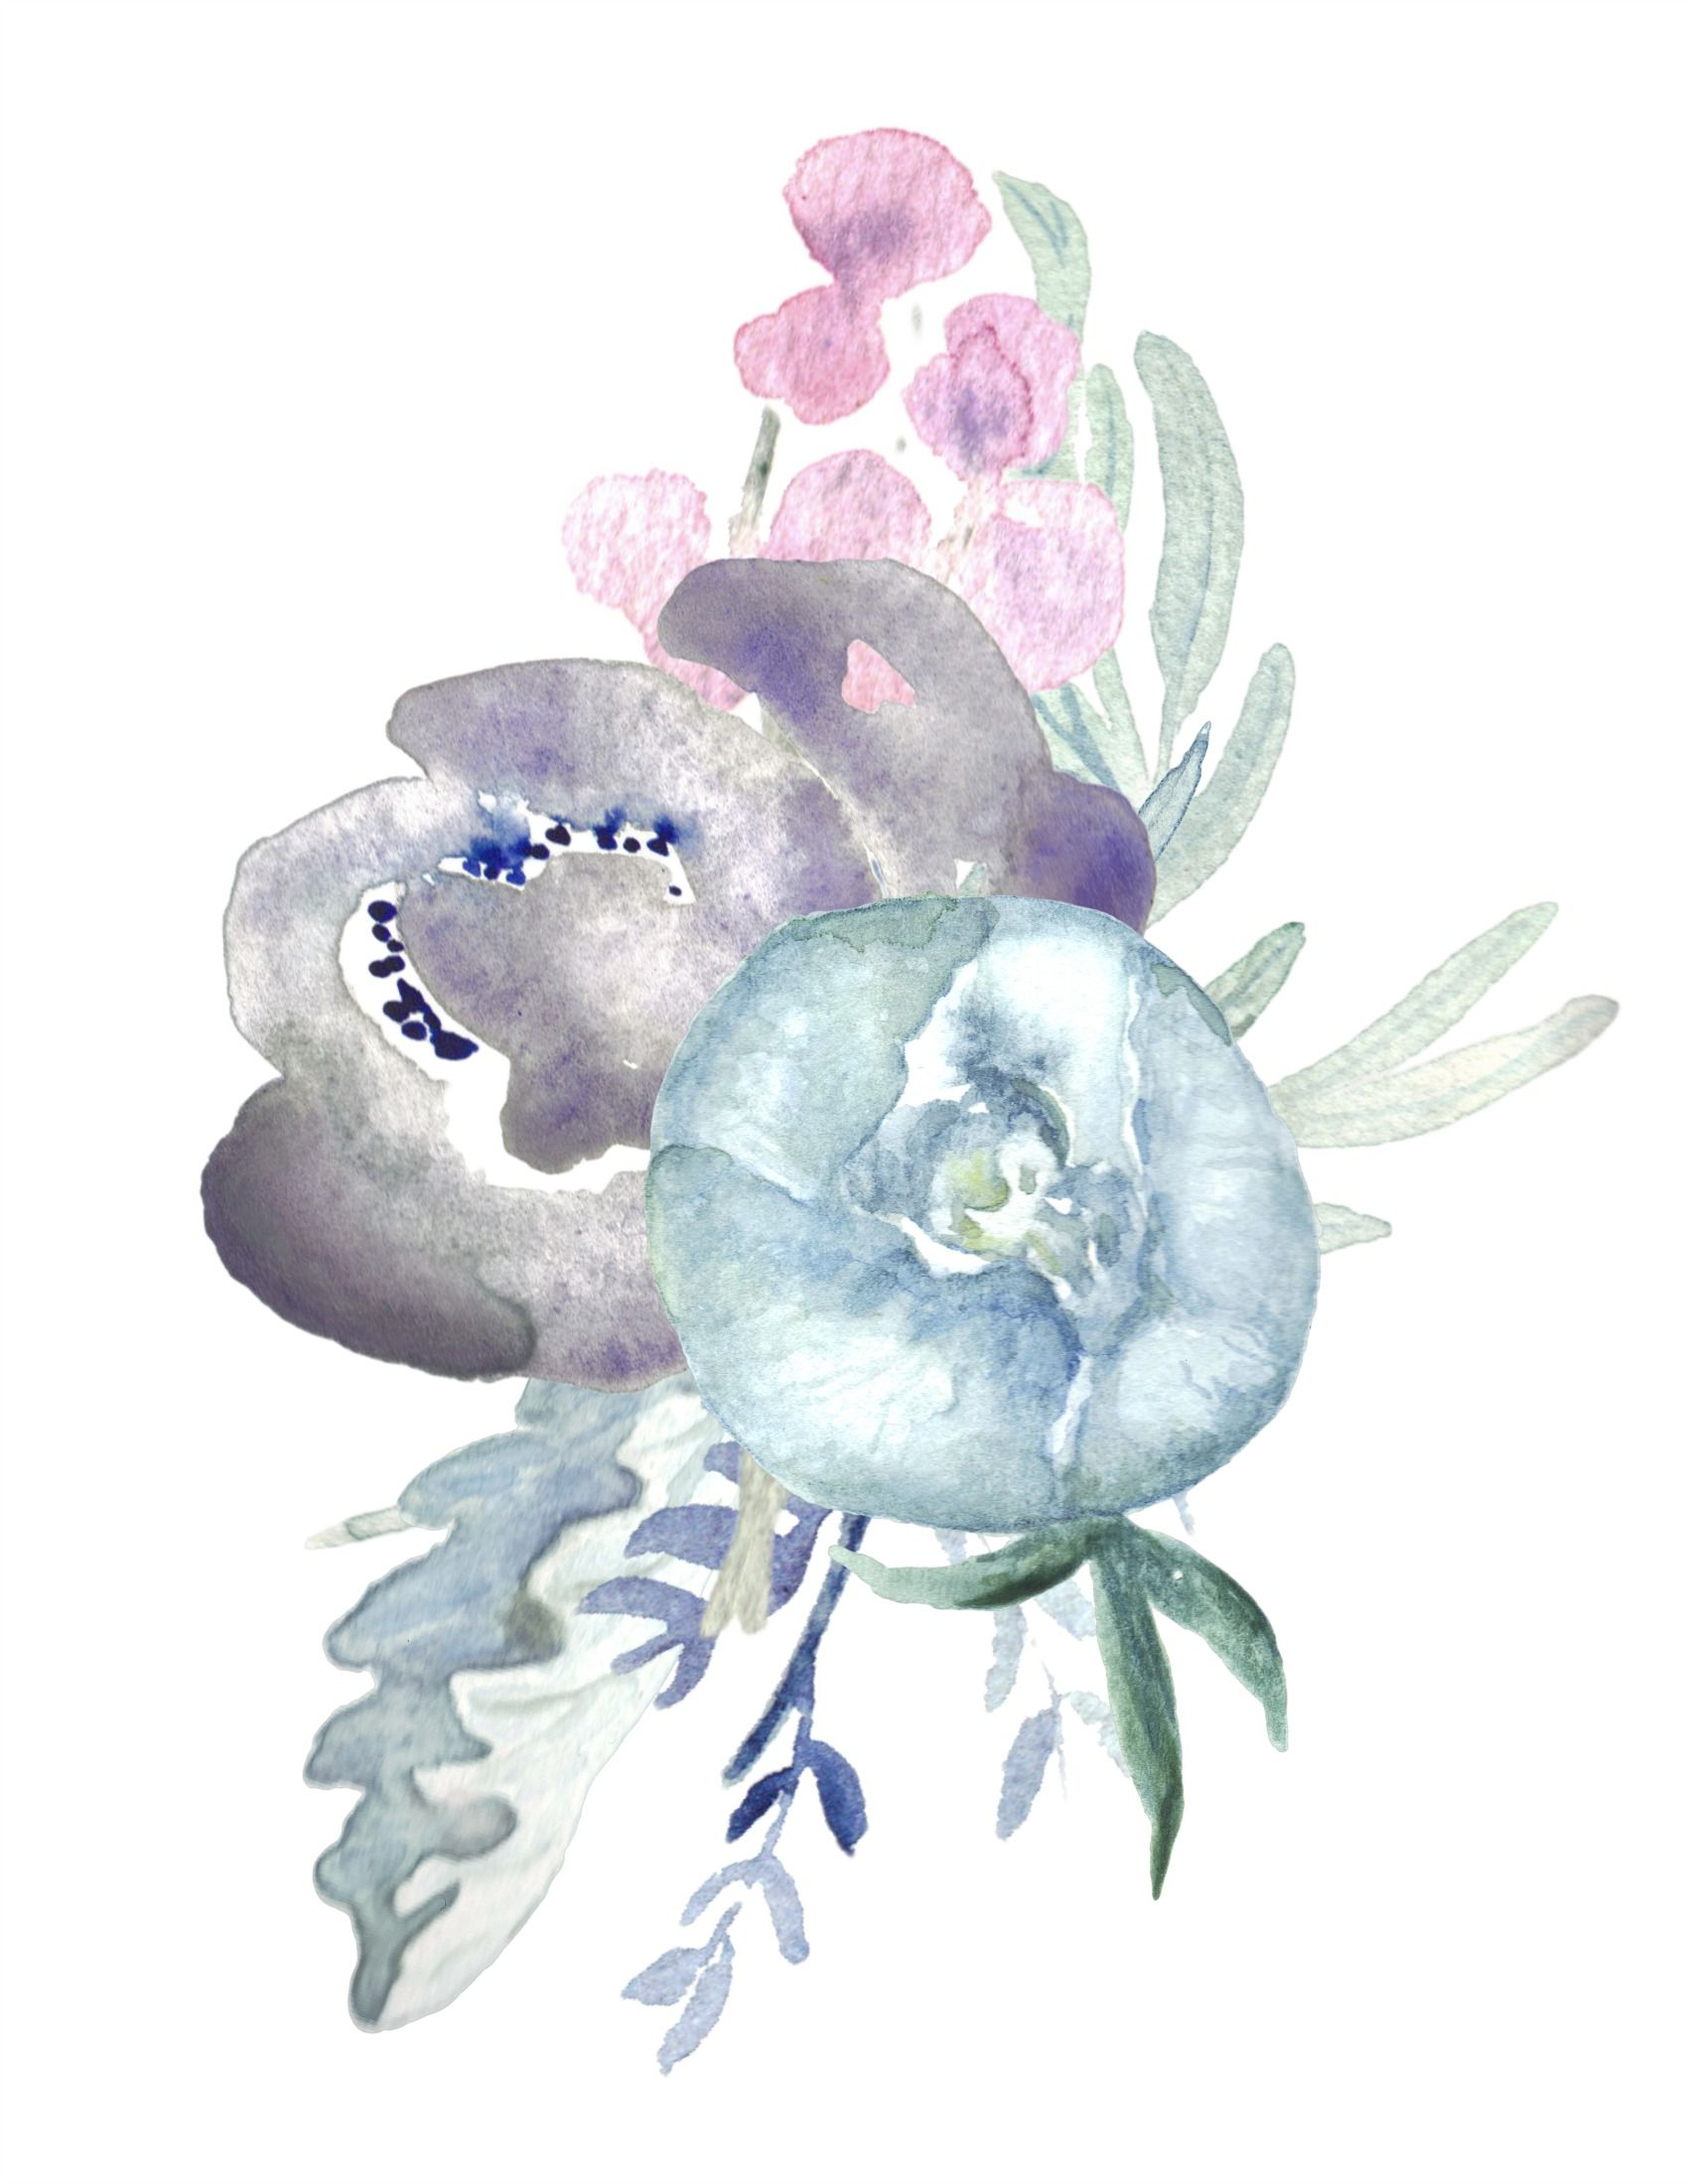 6 Free Printable Floral Watercolour Designs Floral Watercolor